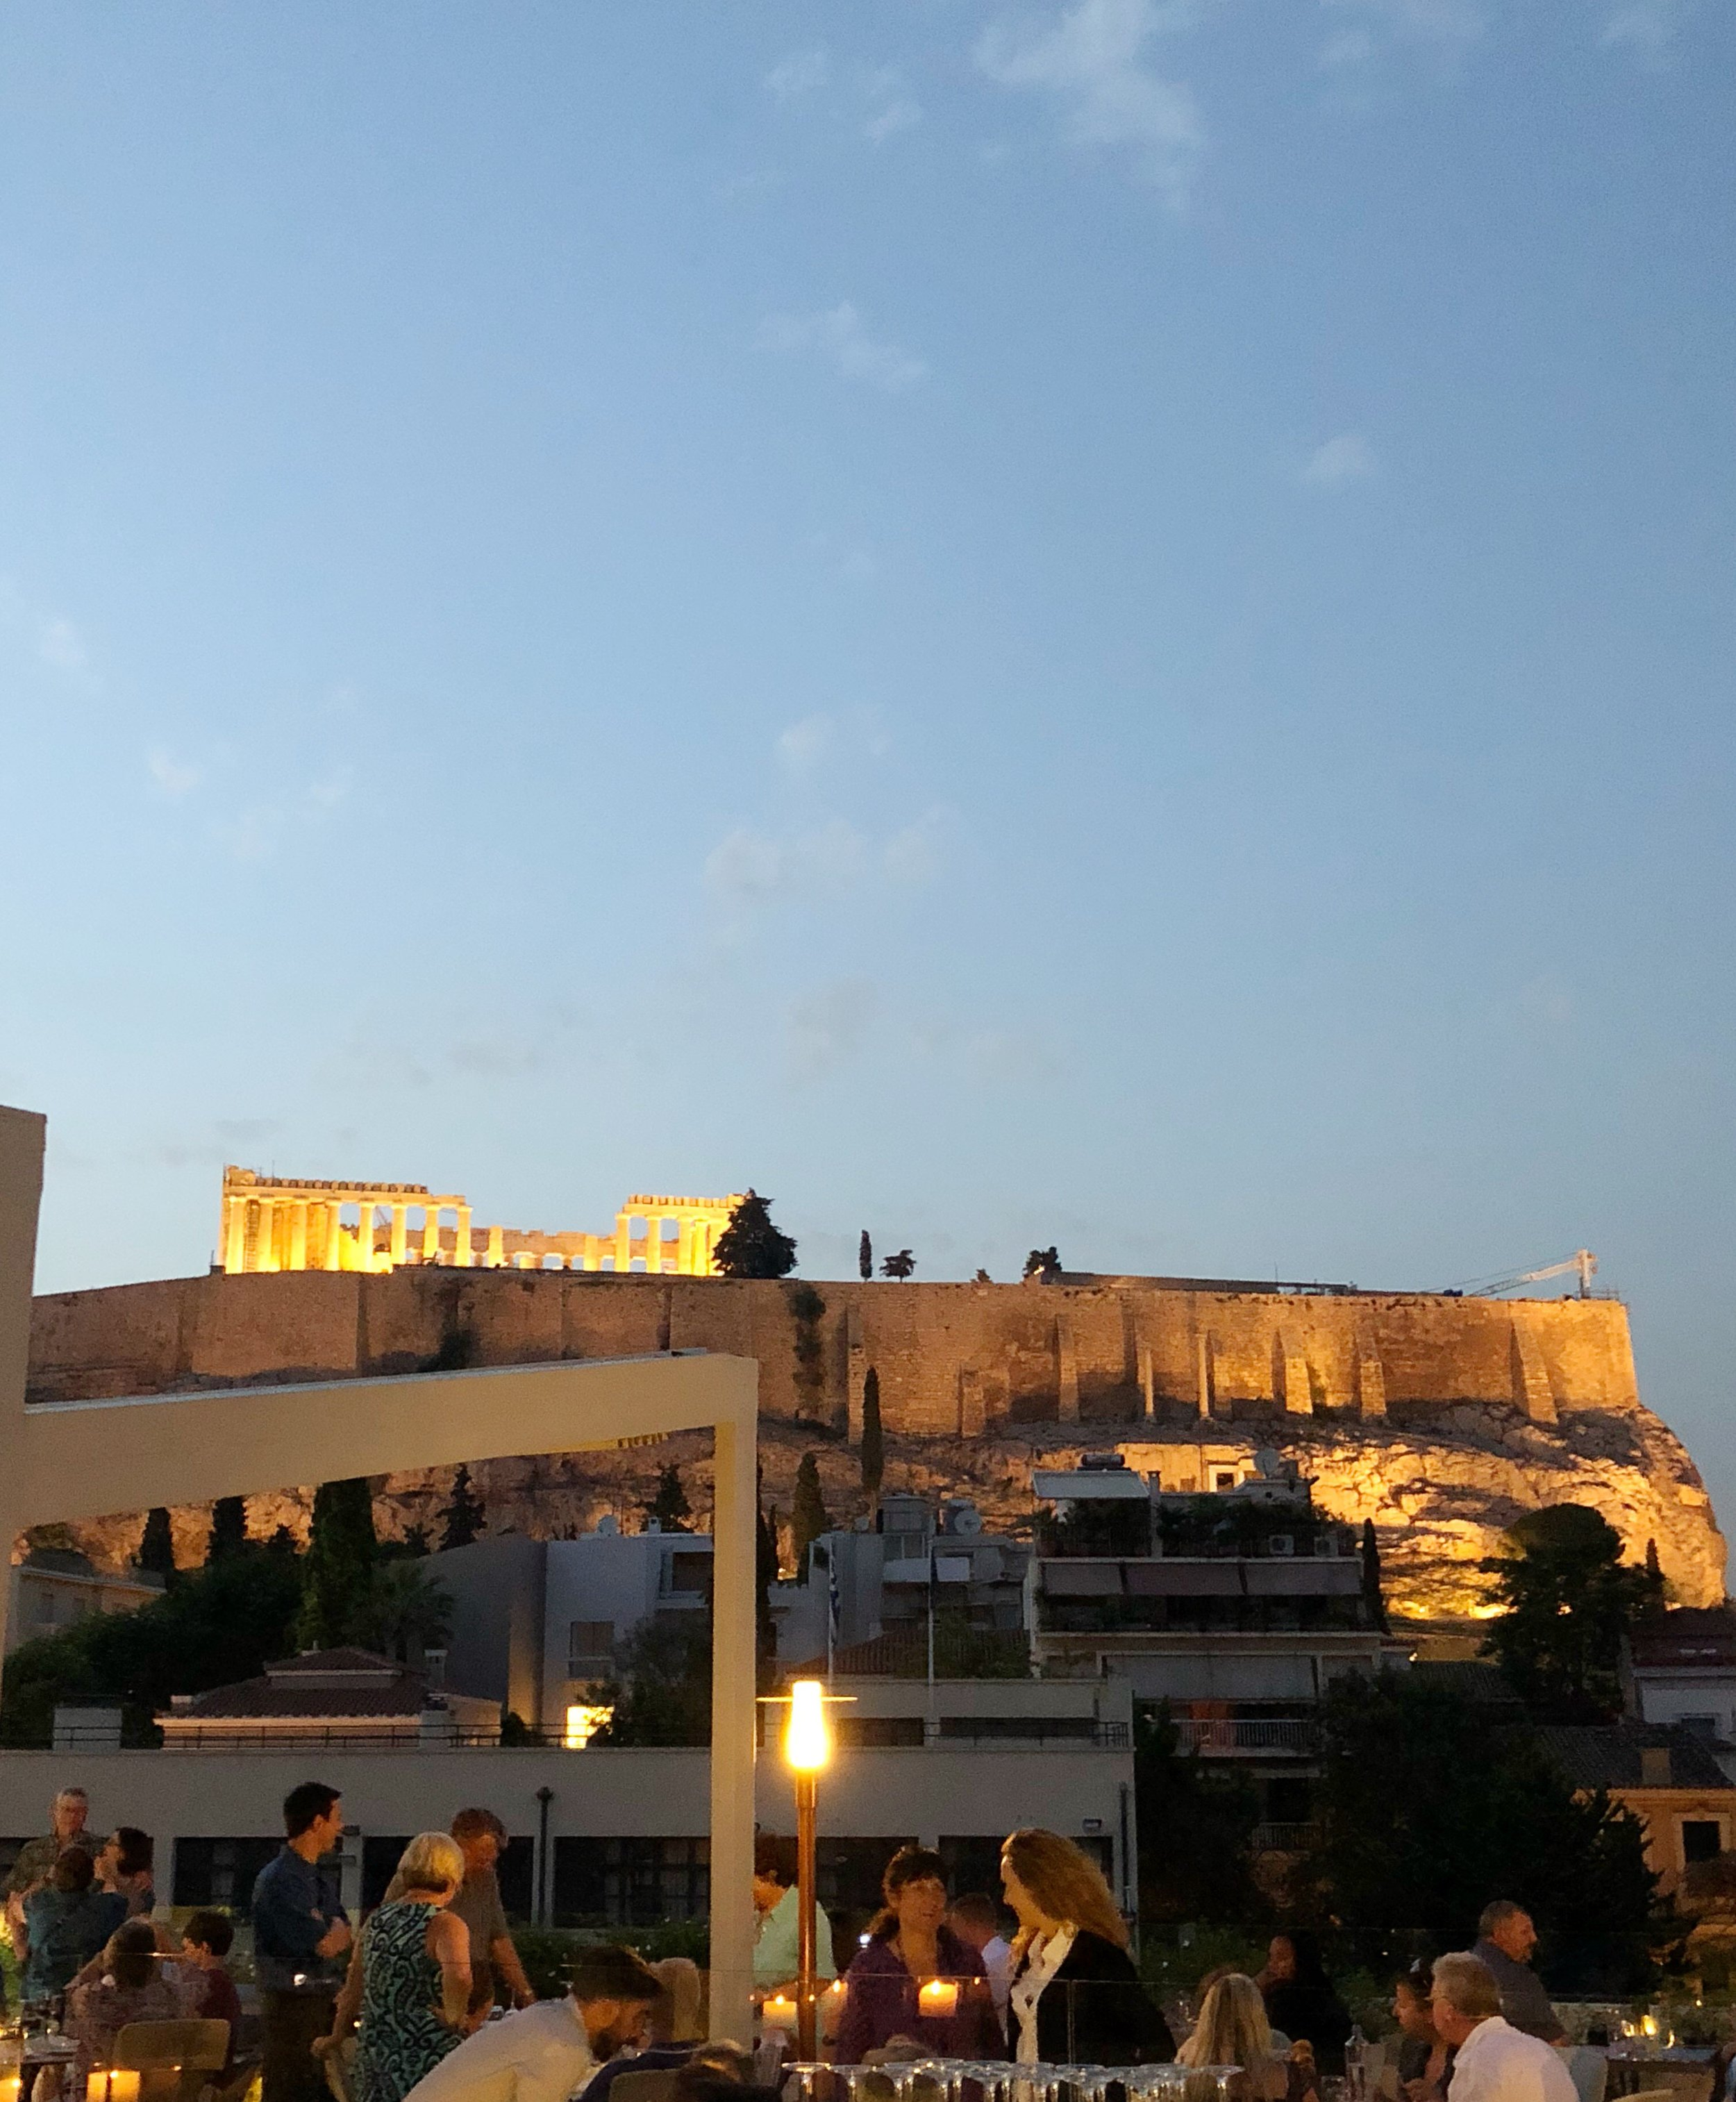 The lights on the Acropolis are STUNNING! View from Herodion Hotel.